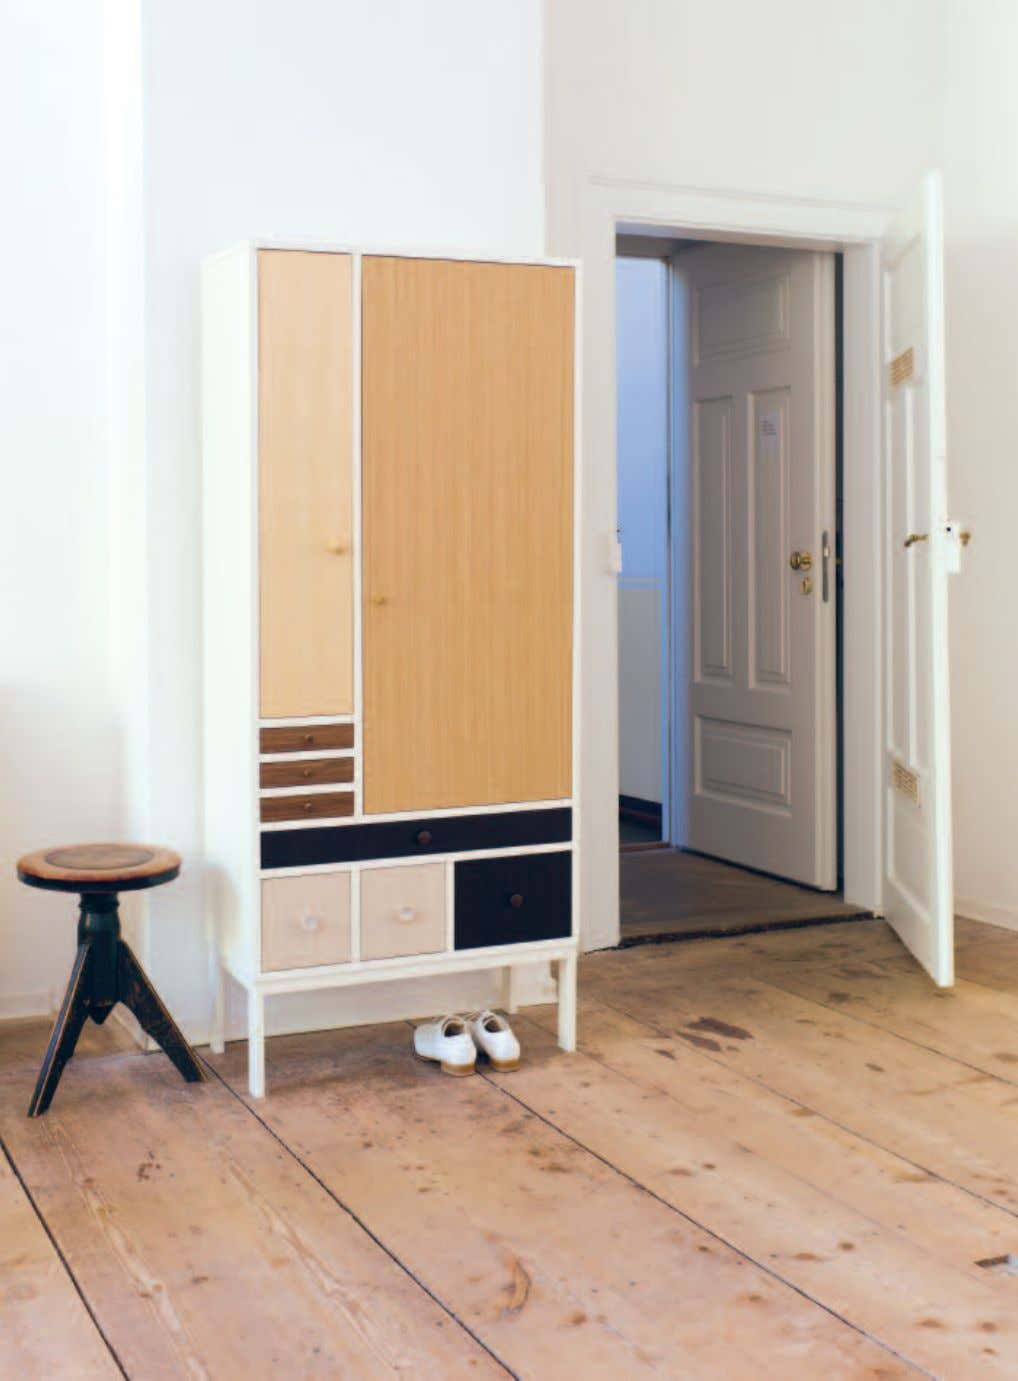 192 _EINZELMÖBEL / INDIVIDUAL FURNITURE ITEMS